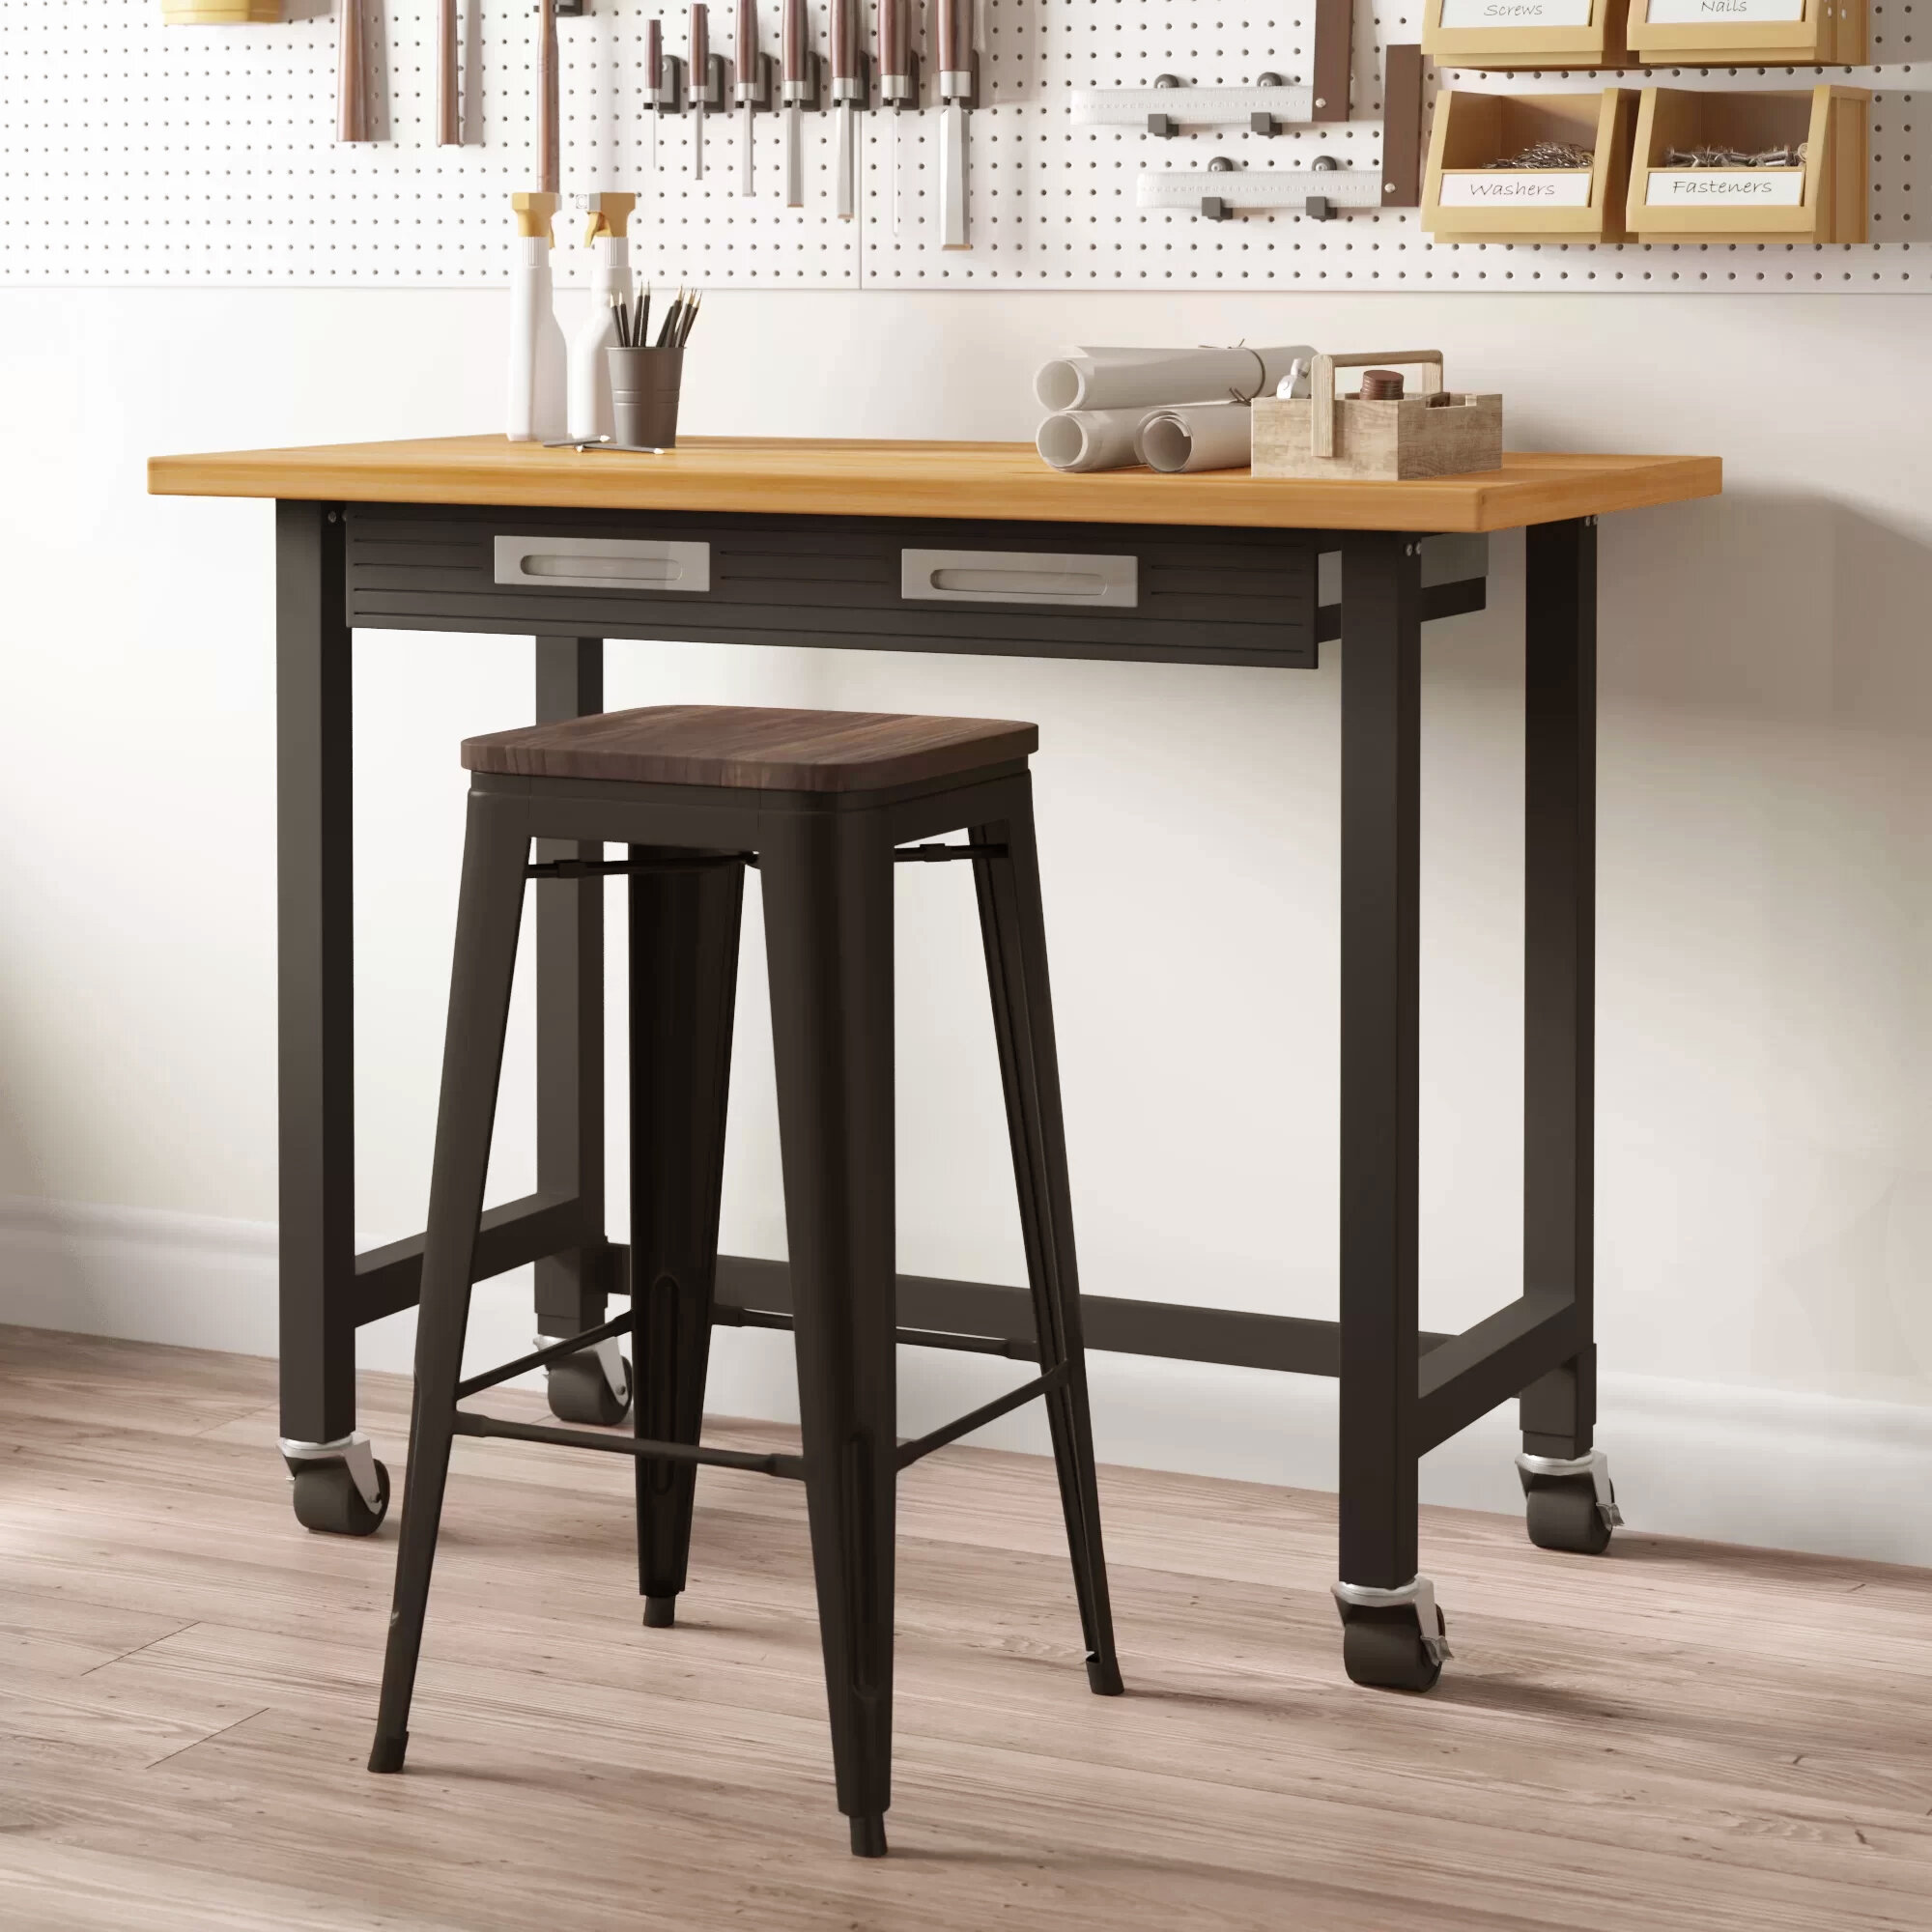 Remarkable D Wooden Top Workbench With Shelf Edsal 34 In W X 24 In H X Machost Co Dining Chair Design Ideas Machostcouk